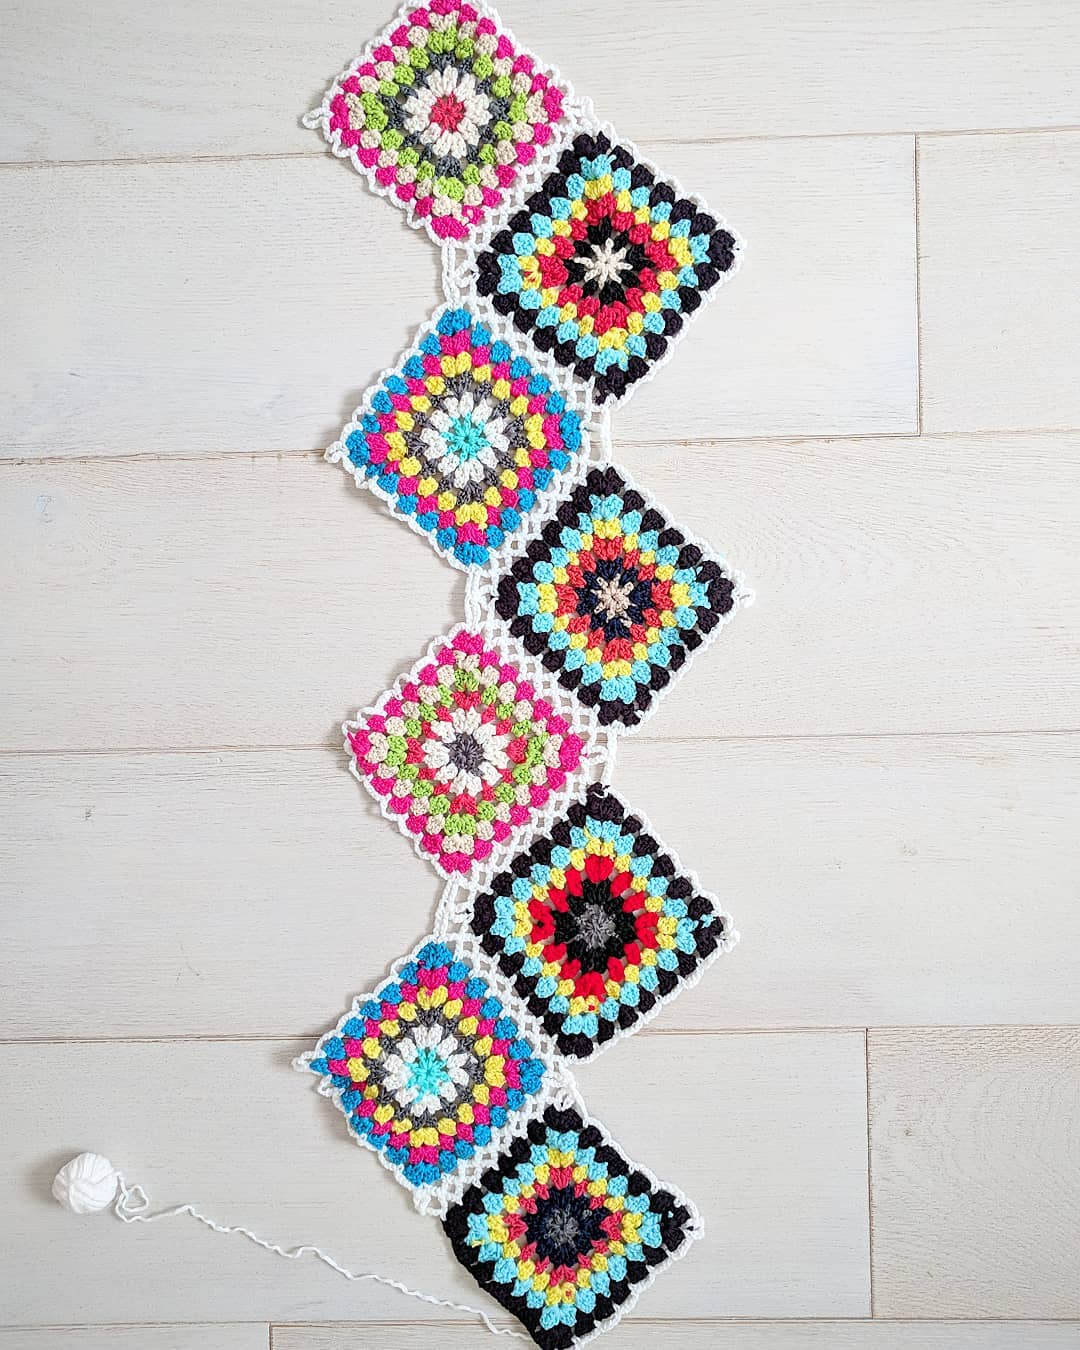 Why Dontcha Give My New Granny Square Cr Crochettoppattern - Crochet Summer Top